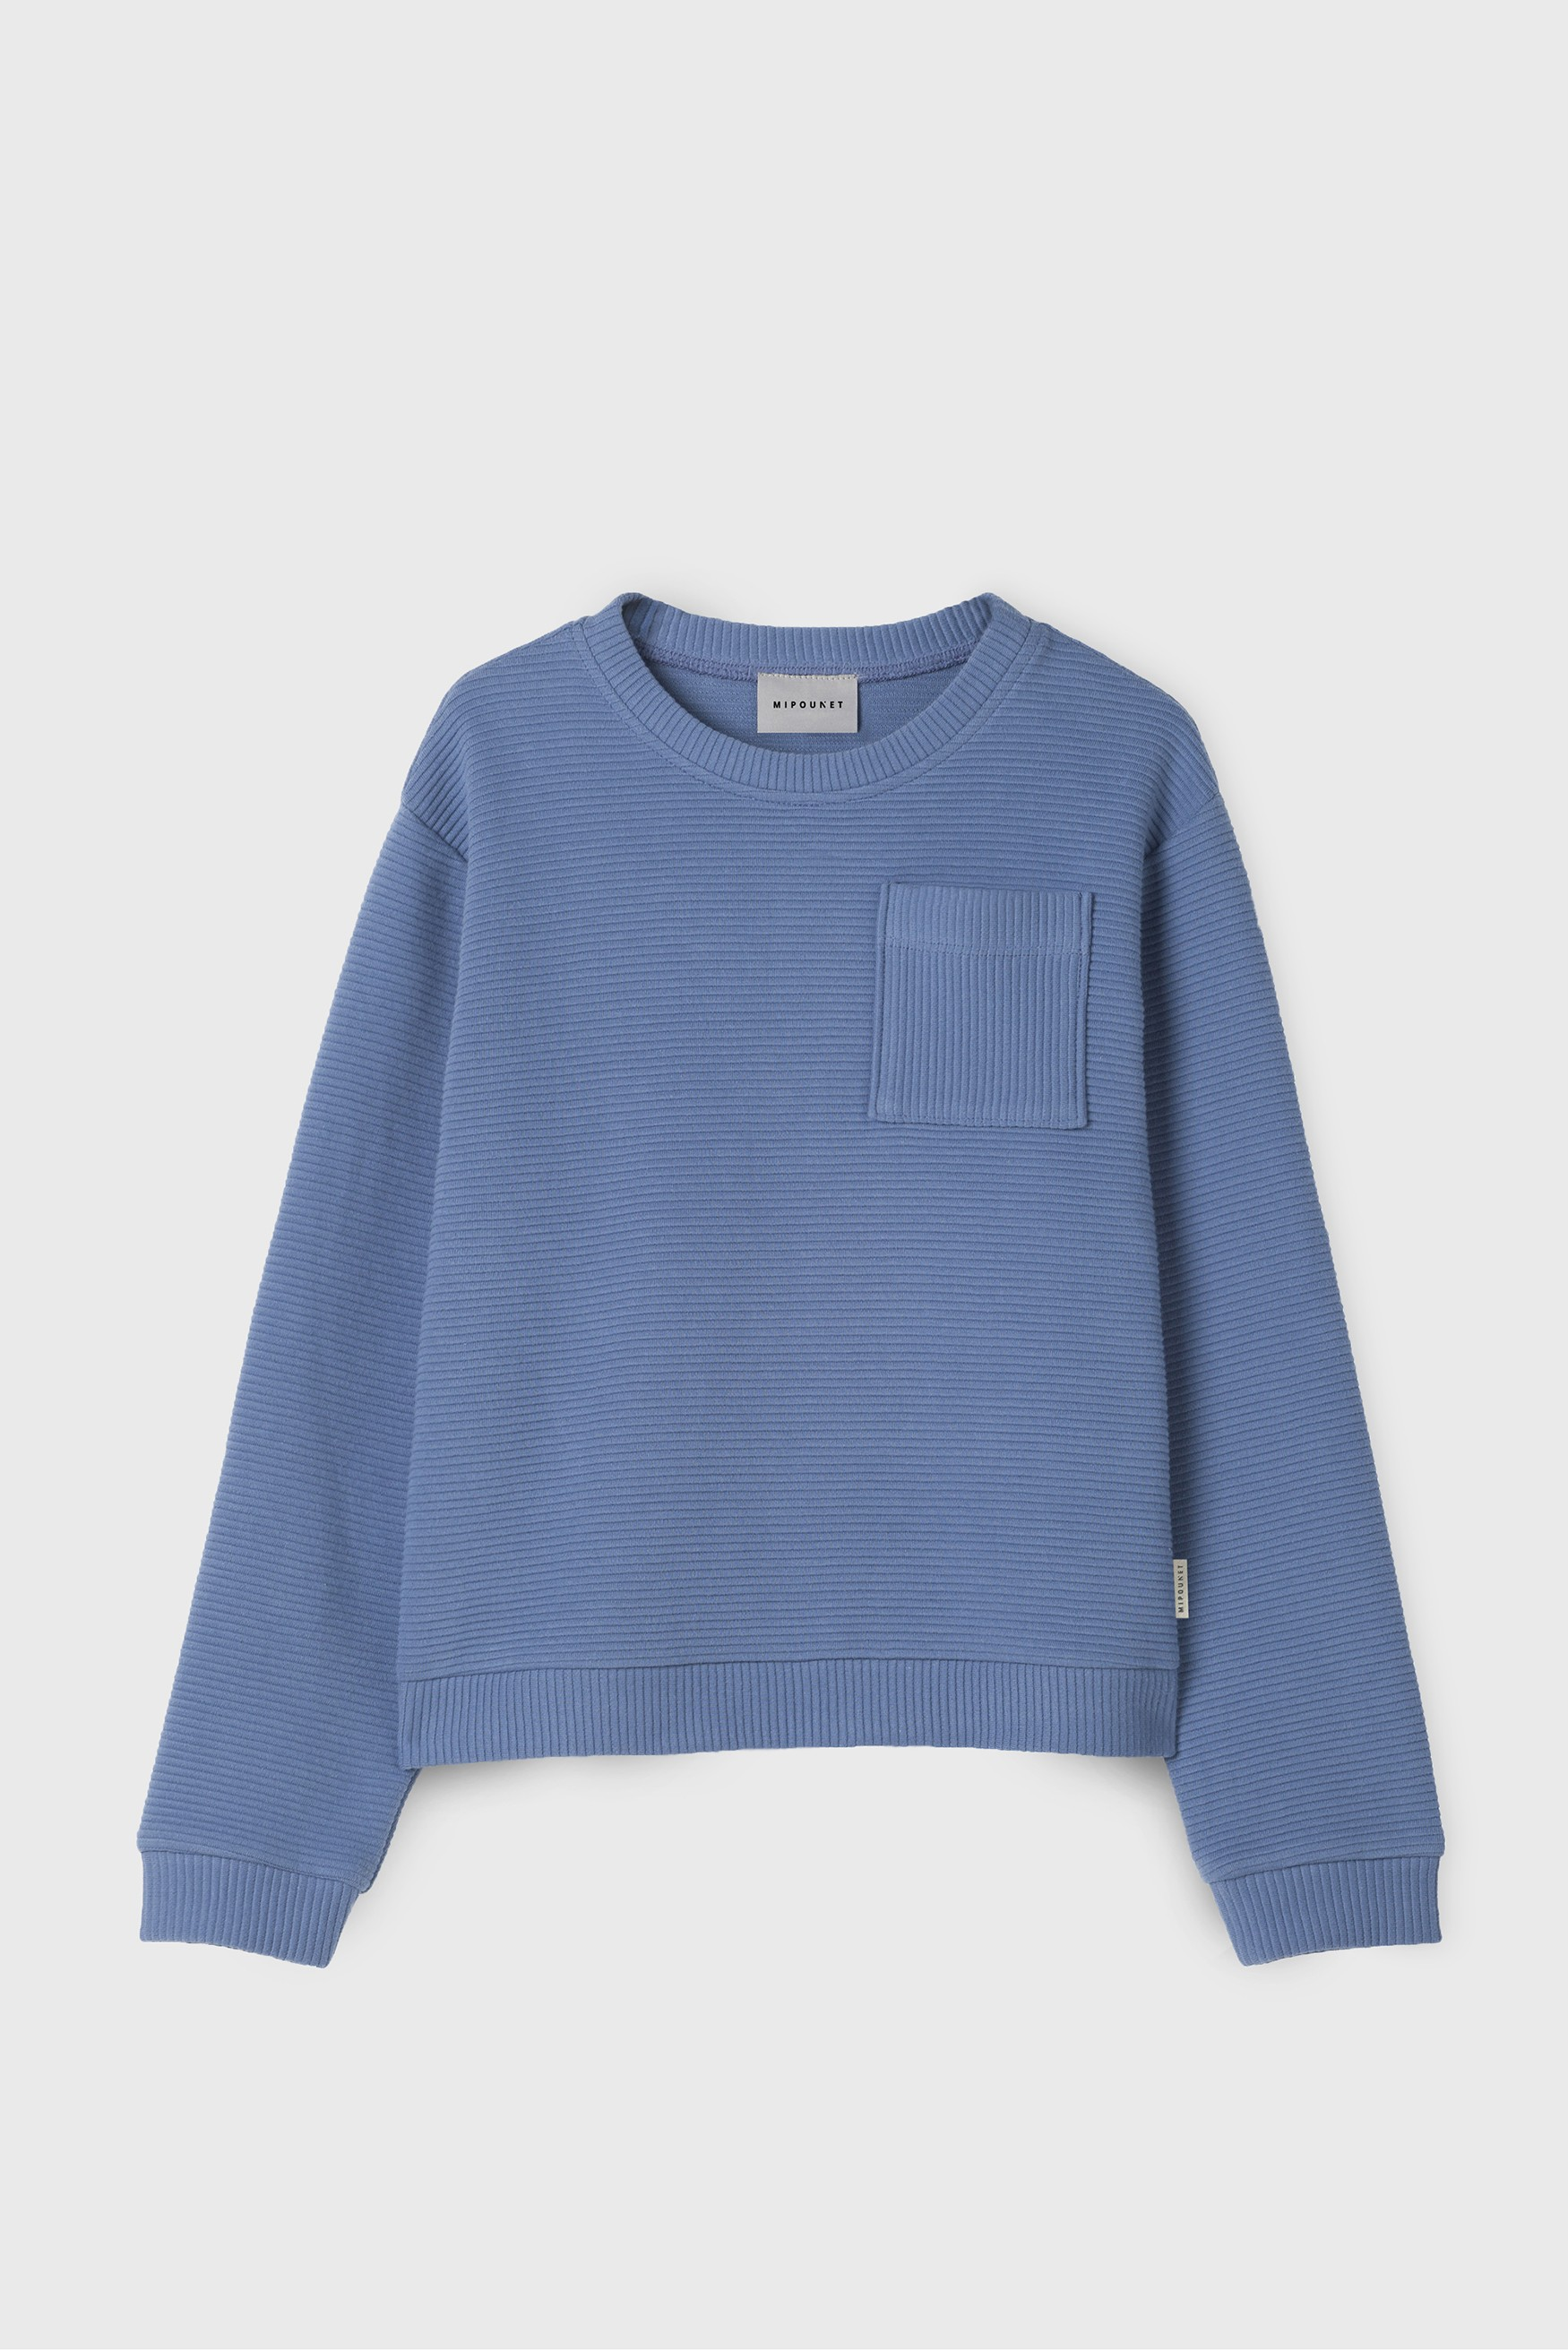 BLUE POCKET DETAIL SWEATSHIRT